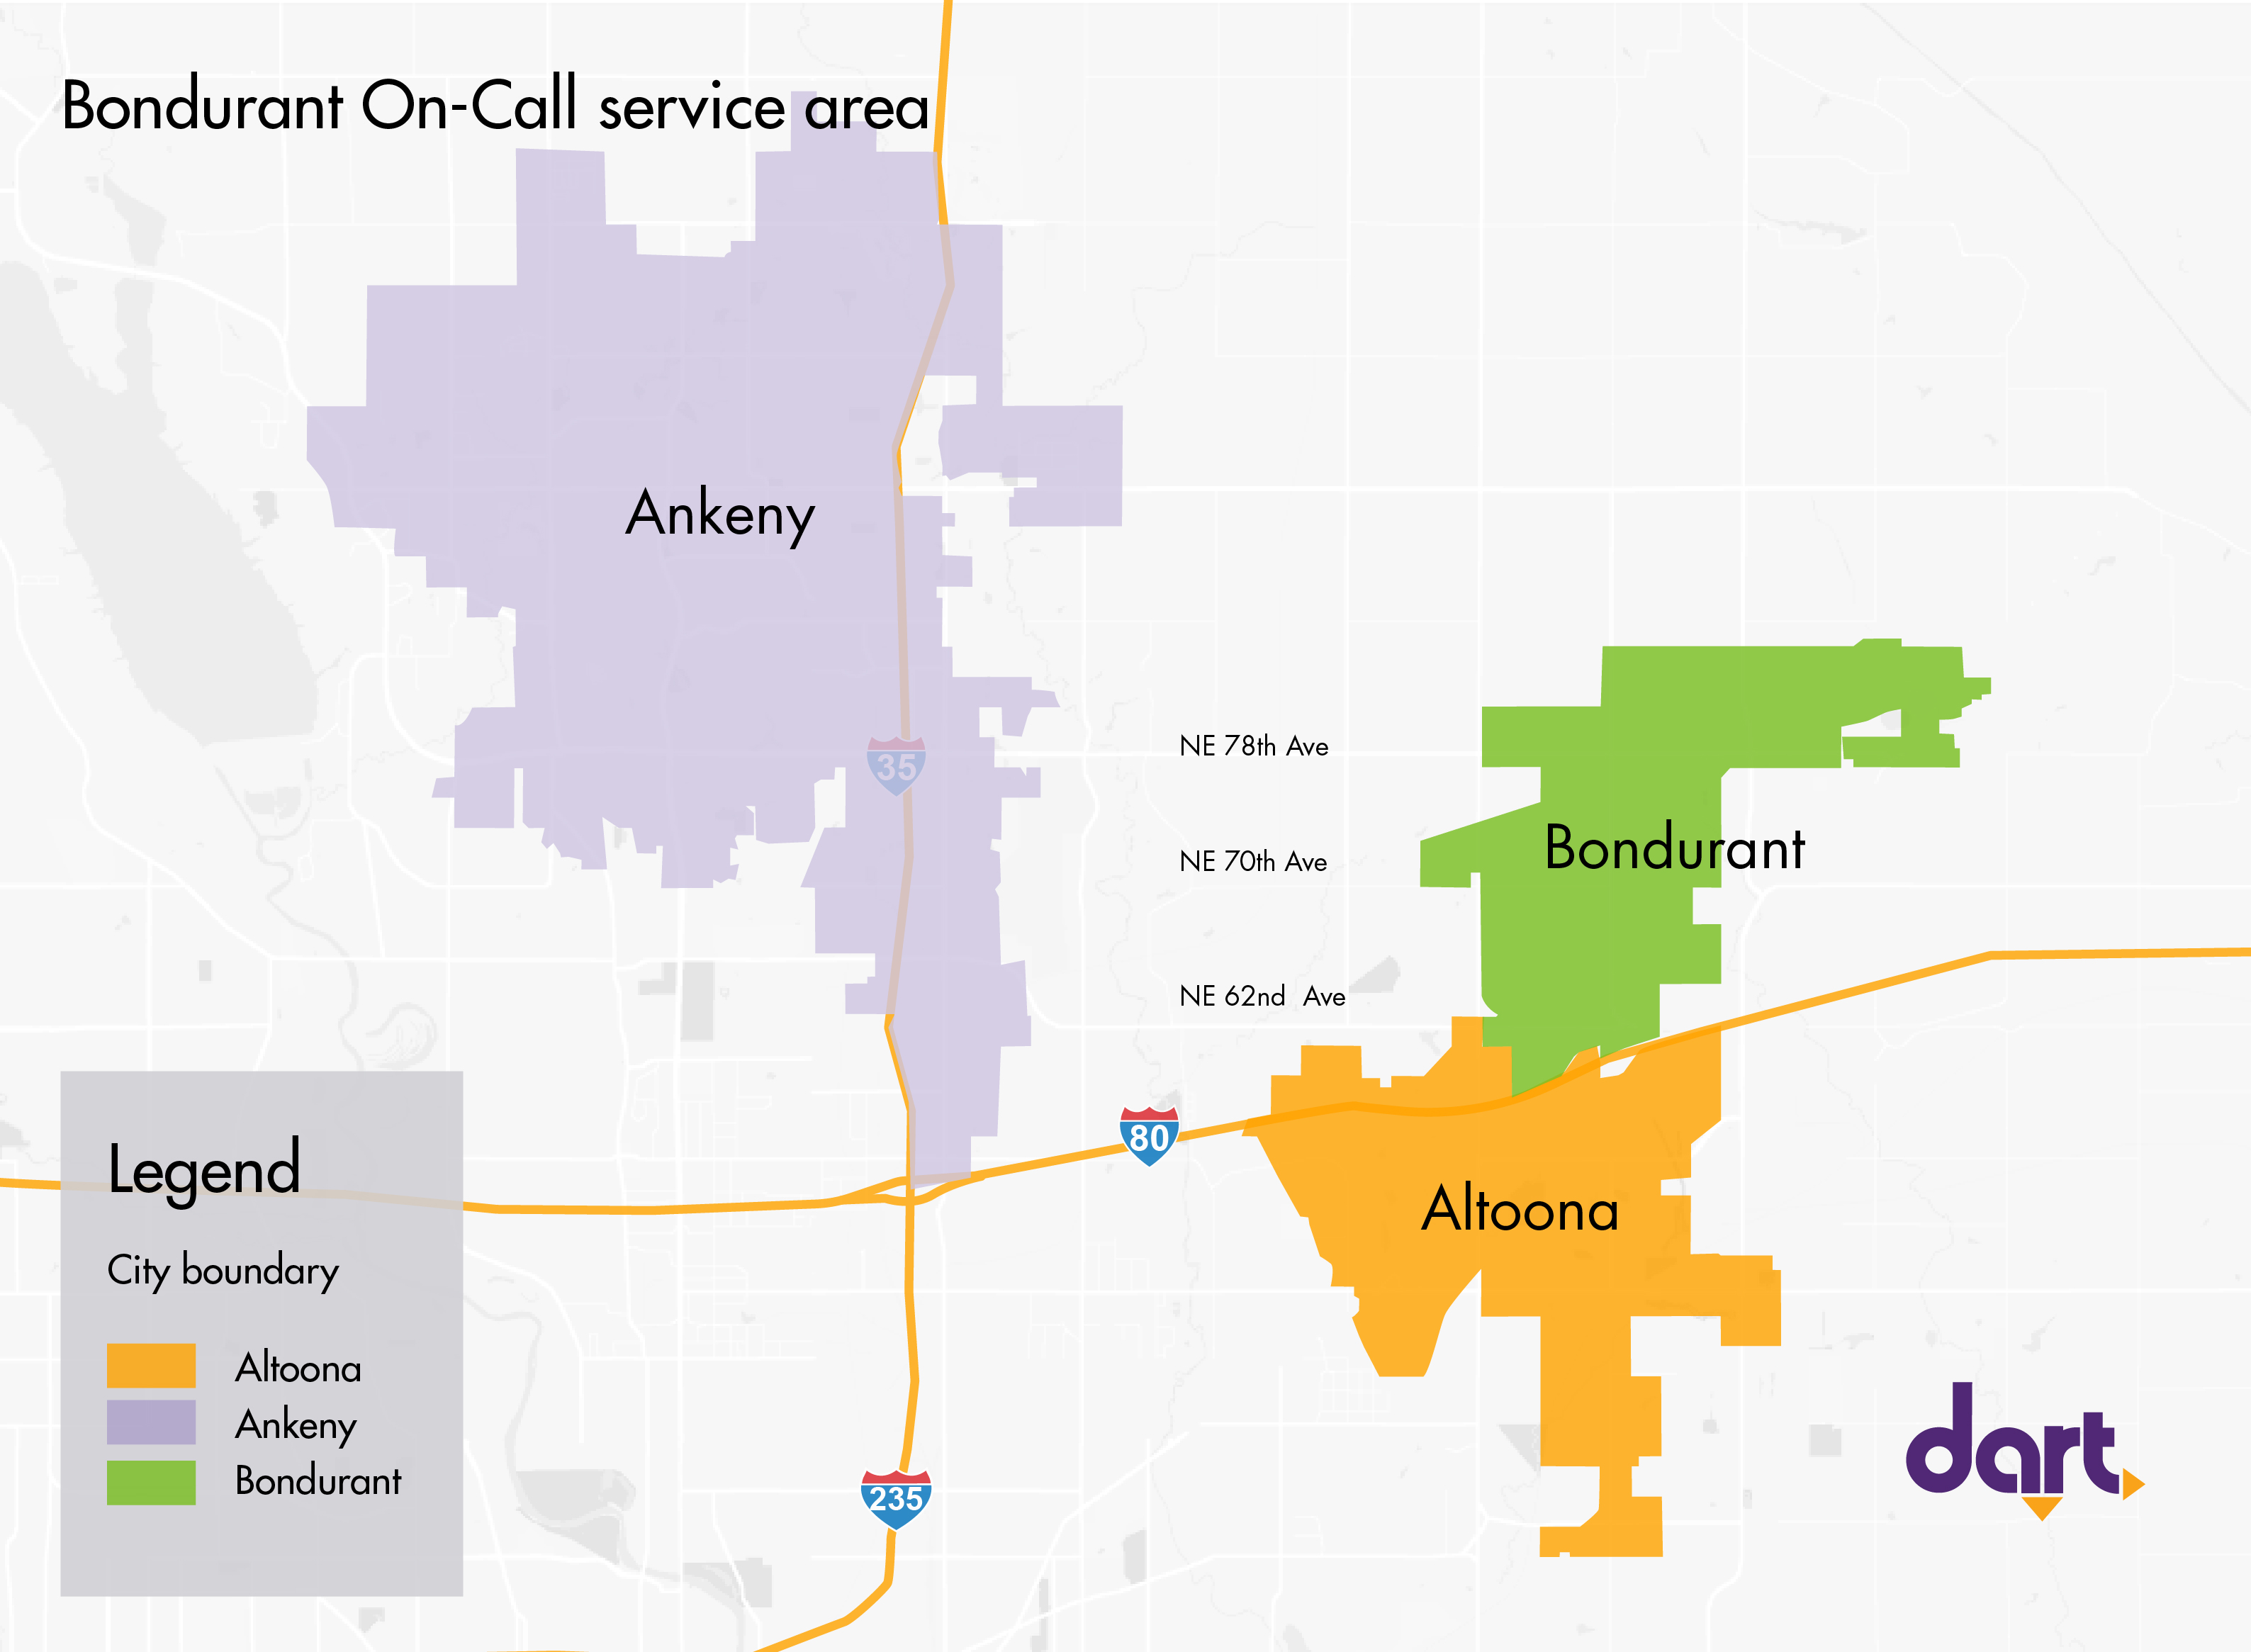 DART On Call Service - Bondurant Map